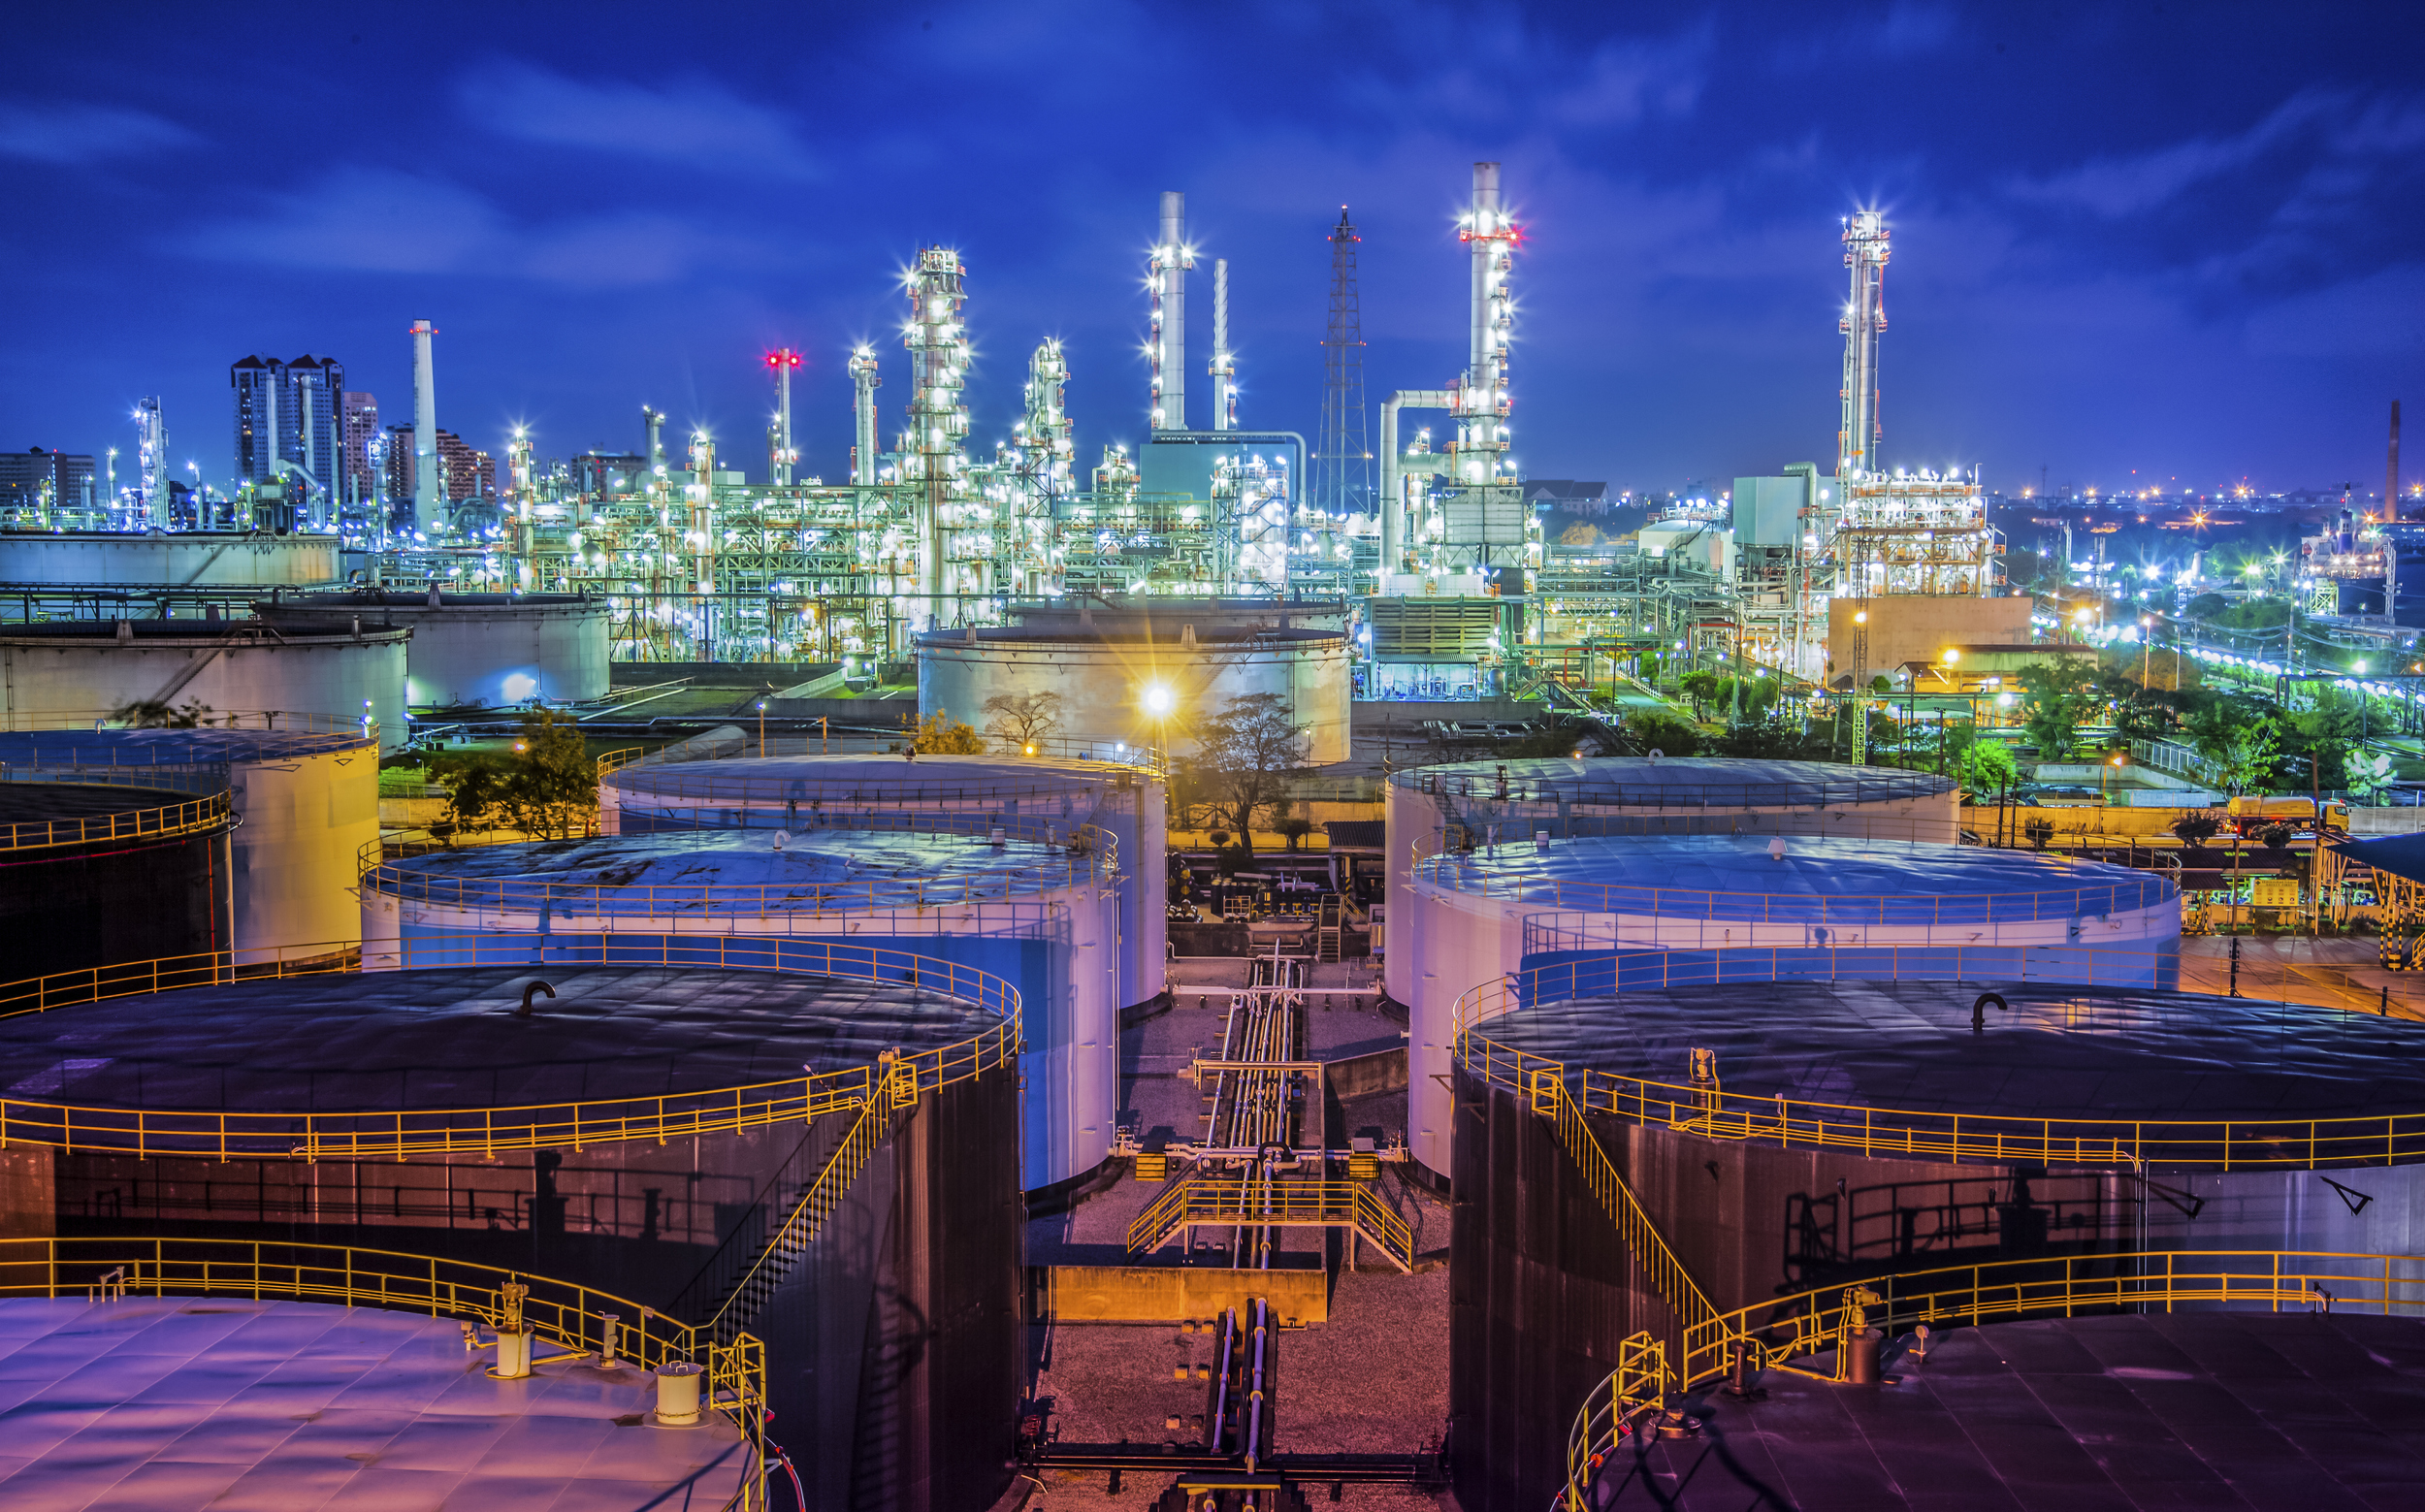 Refinery_and_Tanks_at_night.jpg